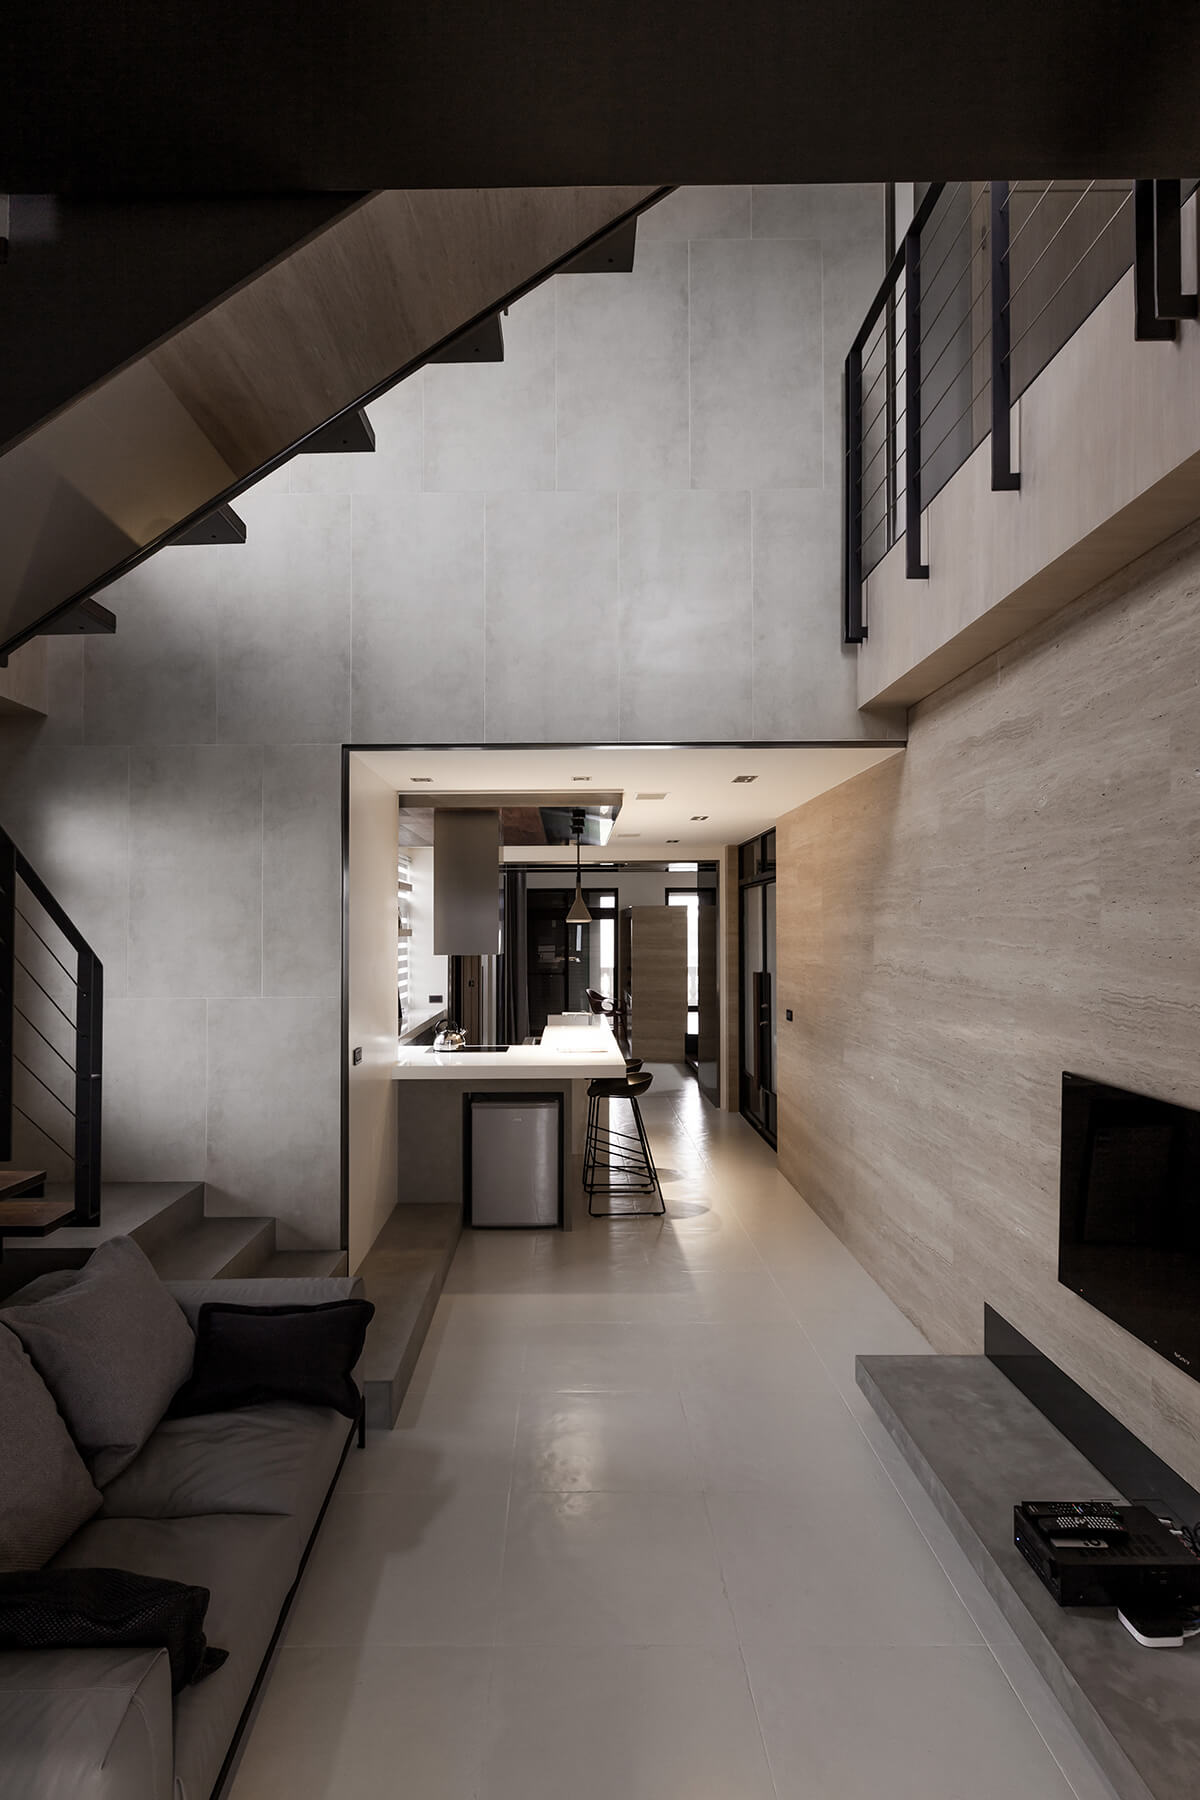 With a head-on view, we see the cozier, lower-ceiling space carved out of the immense structural wall.